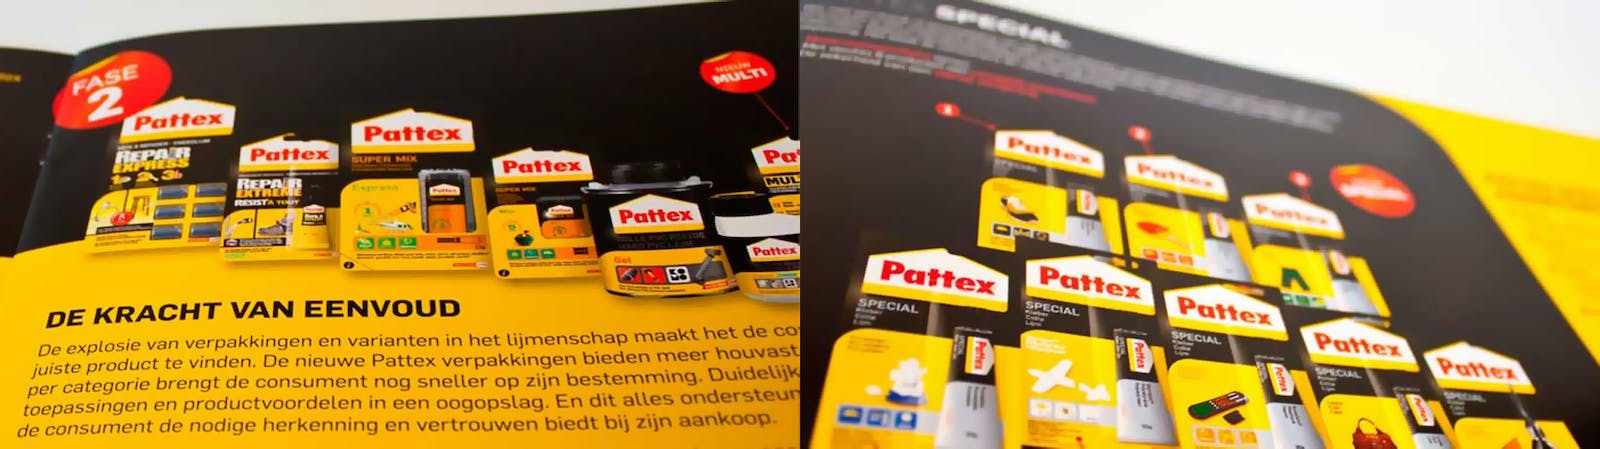 Pattex brochures detail